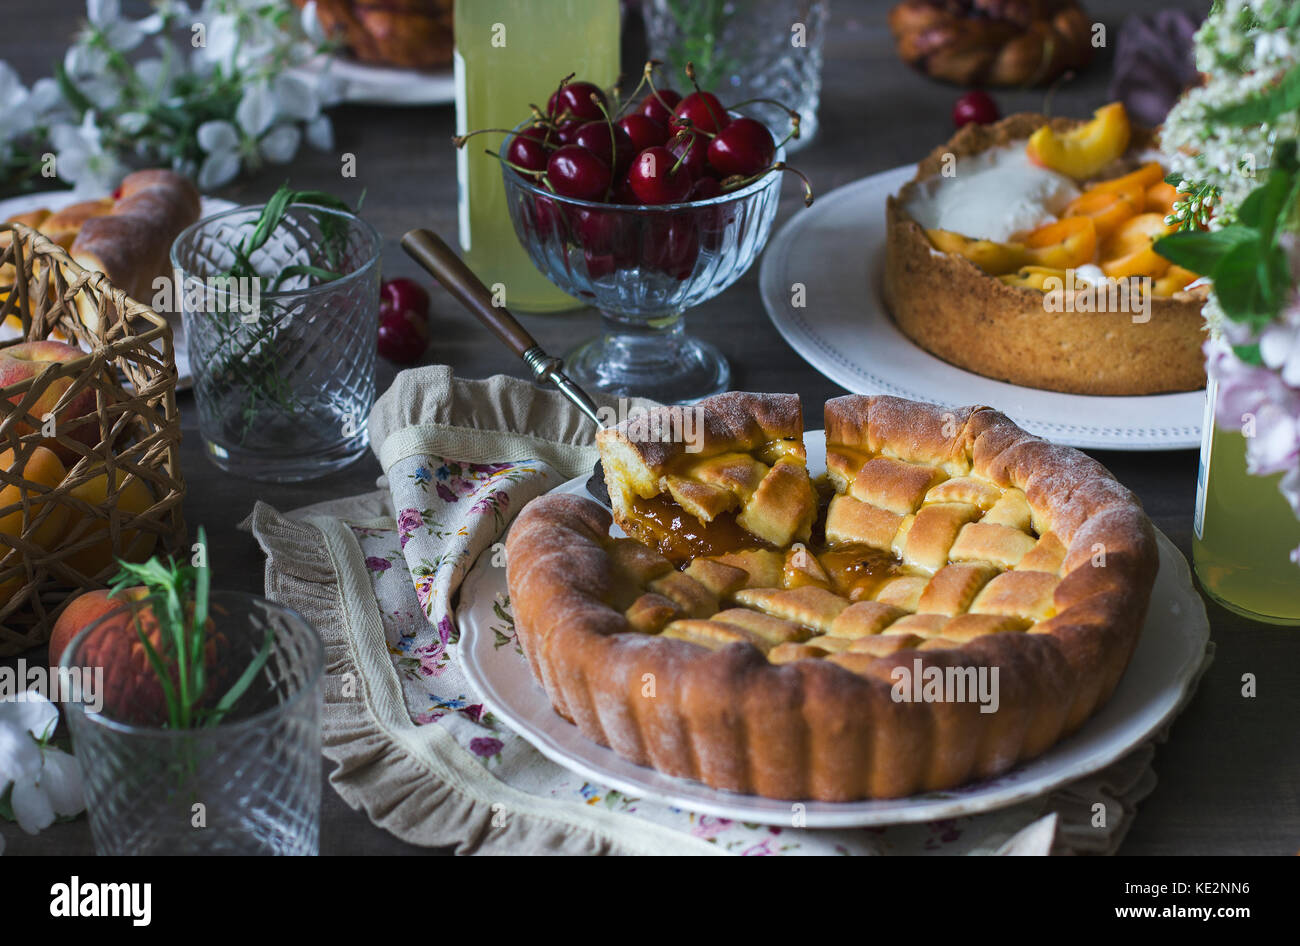 Homemade pie, pastries and food on the festive table - Stock Image